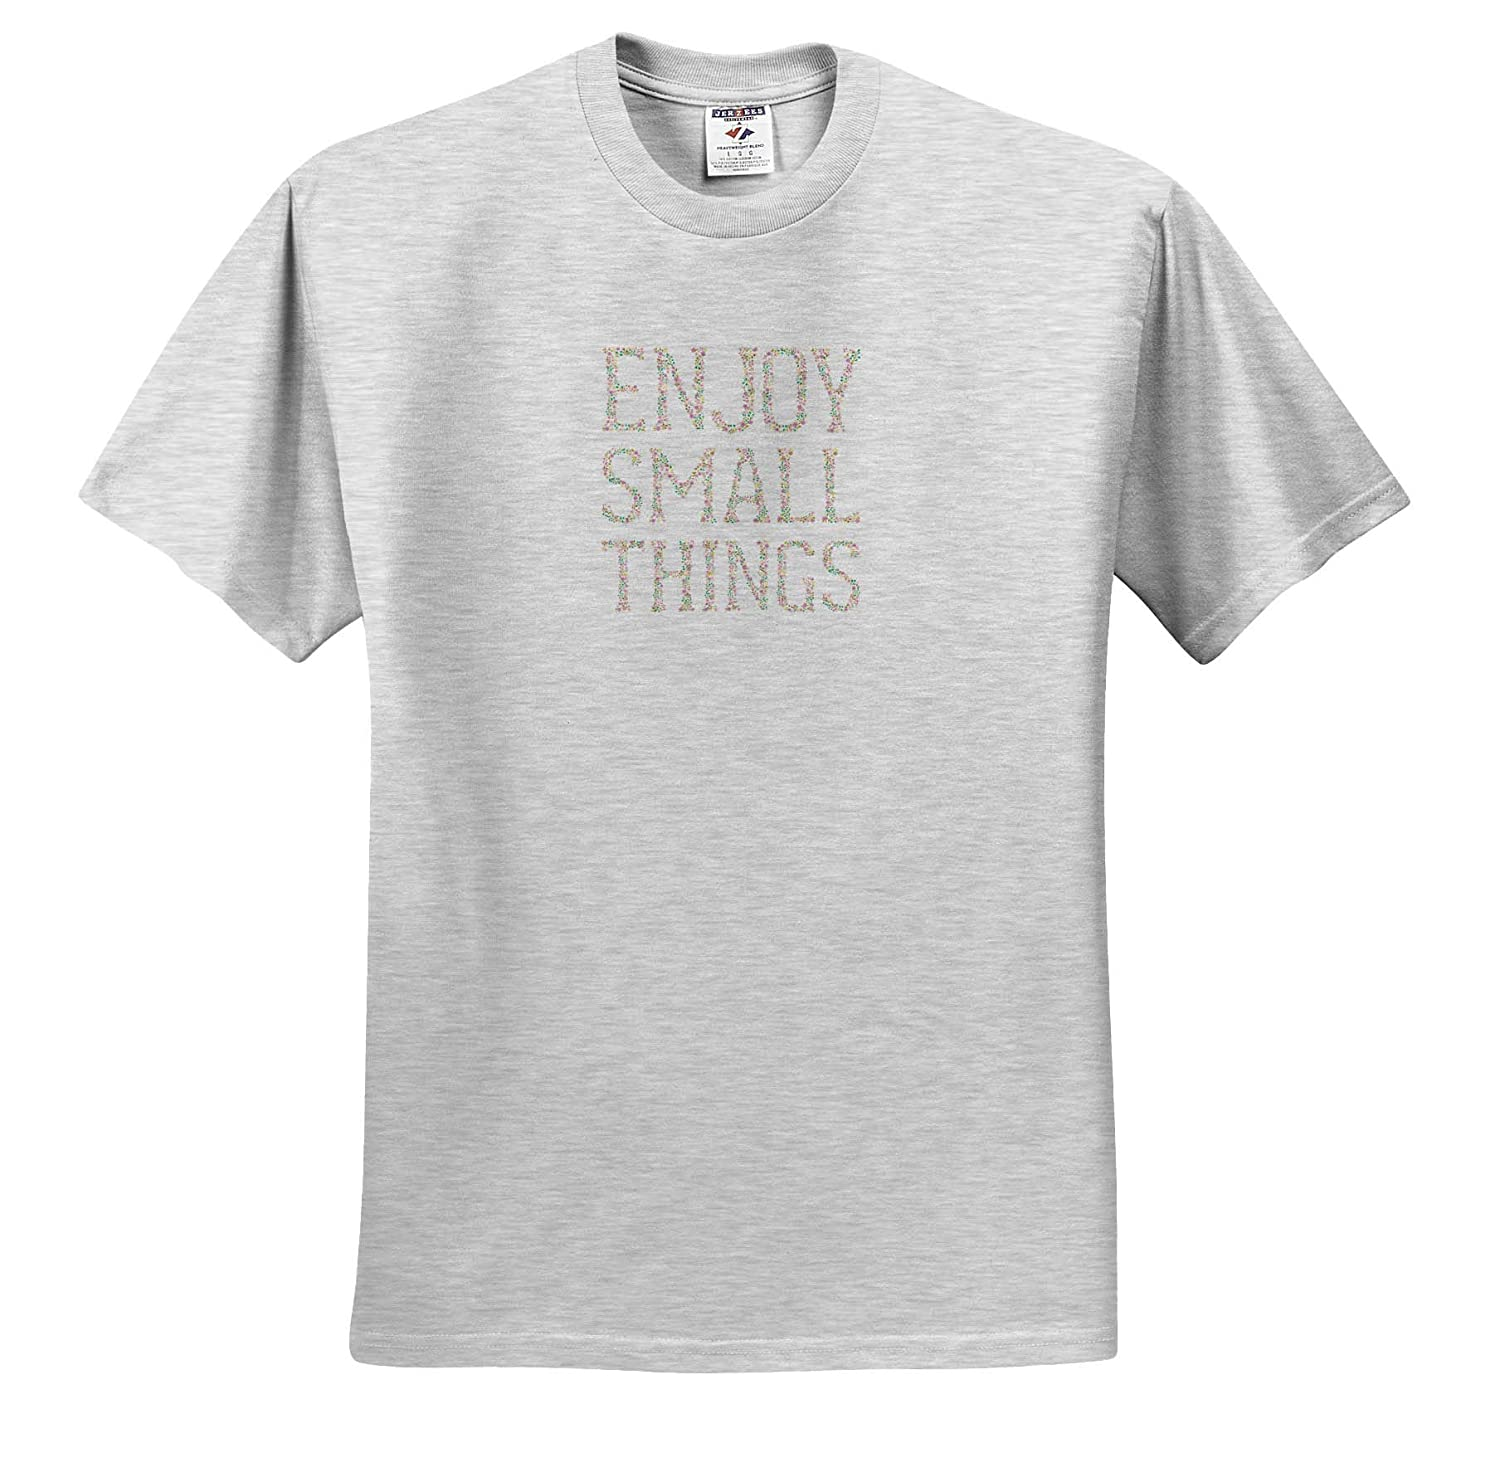 3dRose Alexis Design Each Letter Made of Flowers Flowers Text T-Shirts Pastel Colors A Text Enjoy Small Things